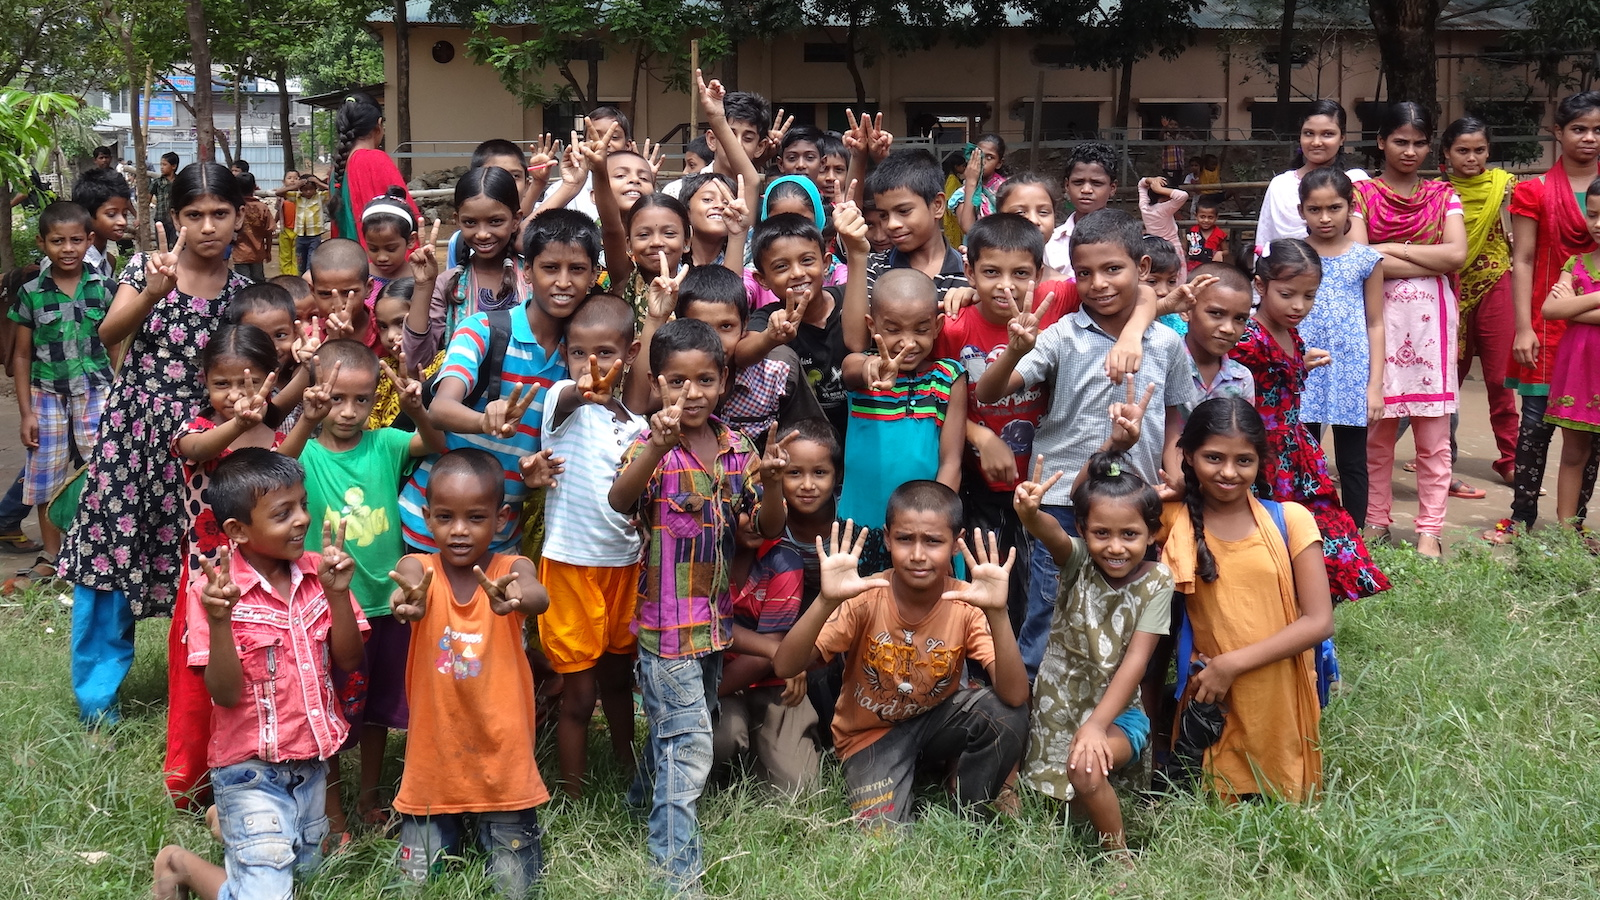 A group of children in Bangladesh